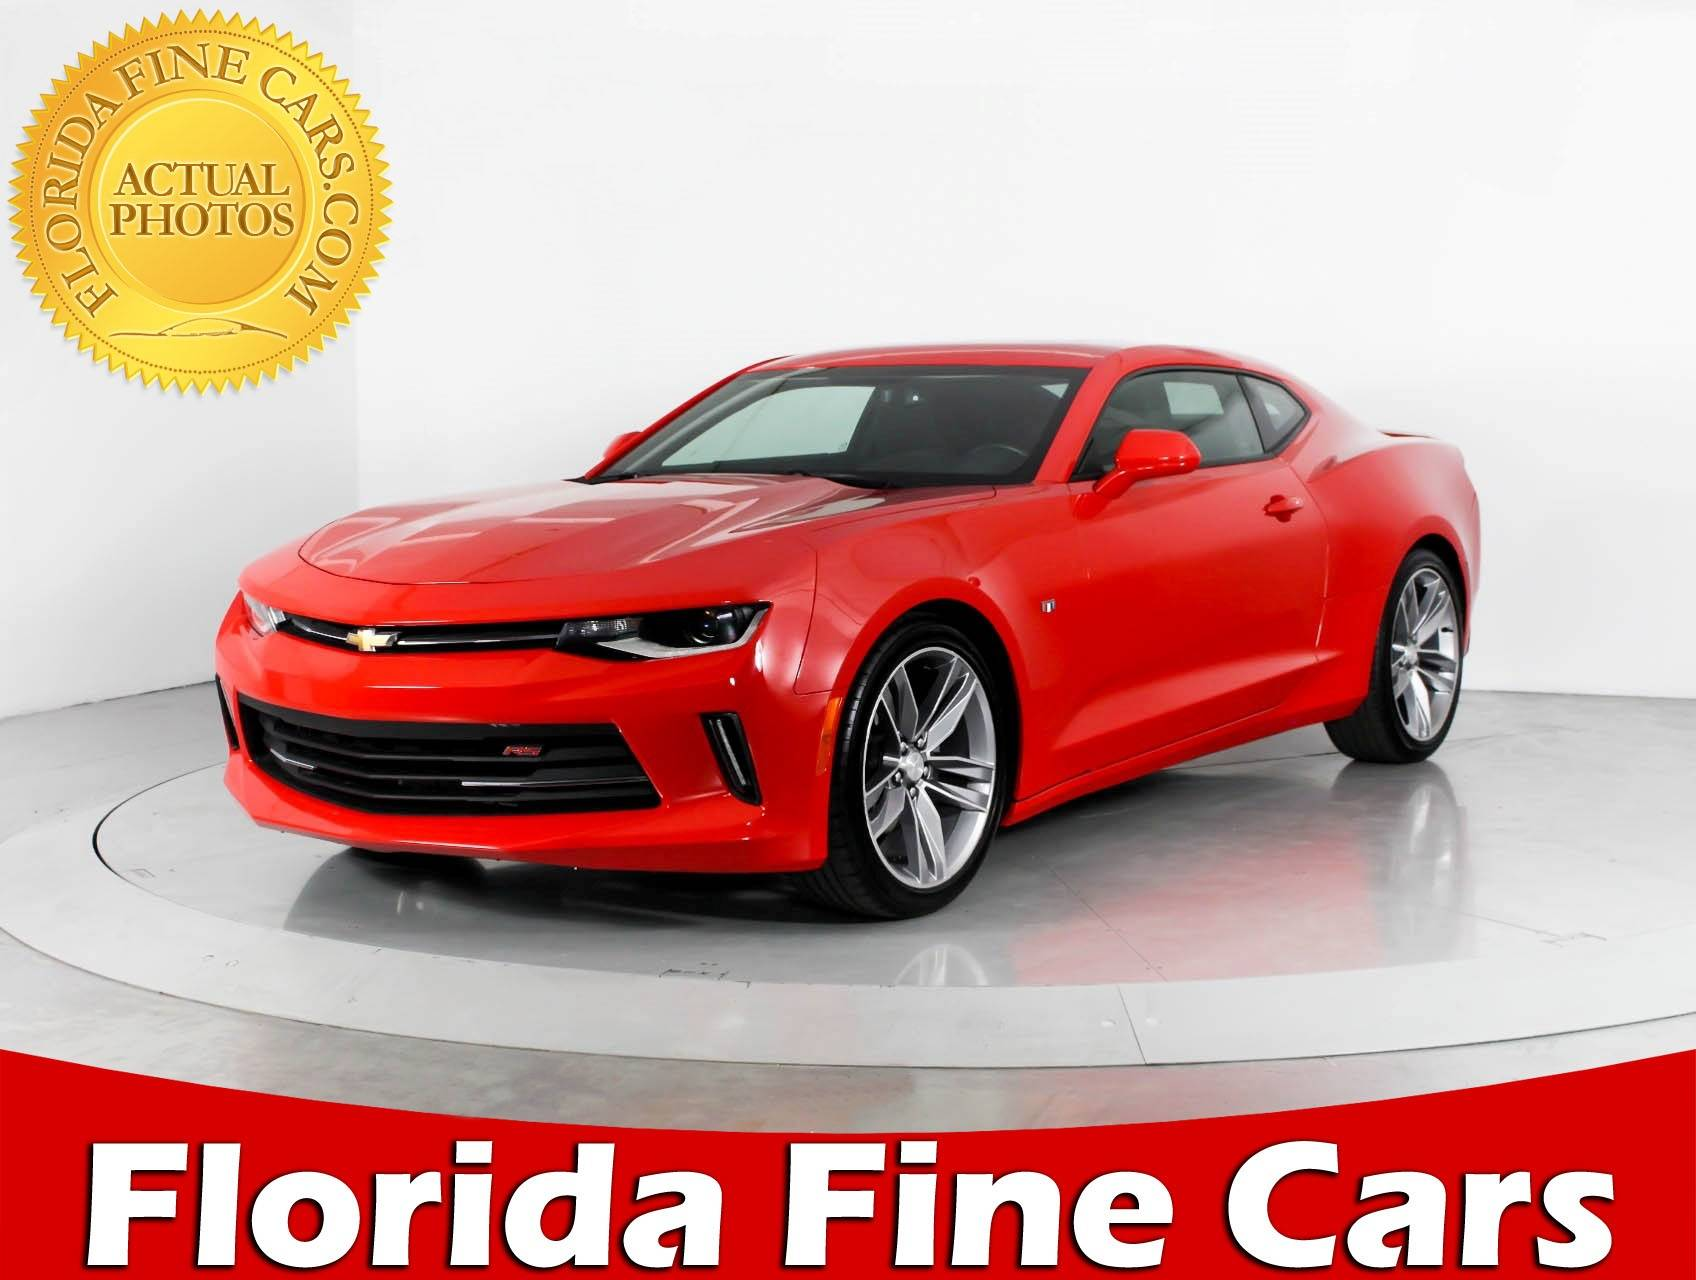 Used 2017 CHEVROLET CAMARO 1LT Coupe for sale in WEST PALM, FL ...